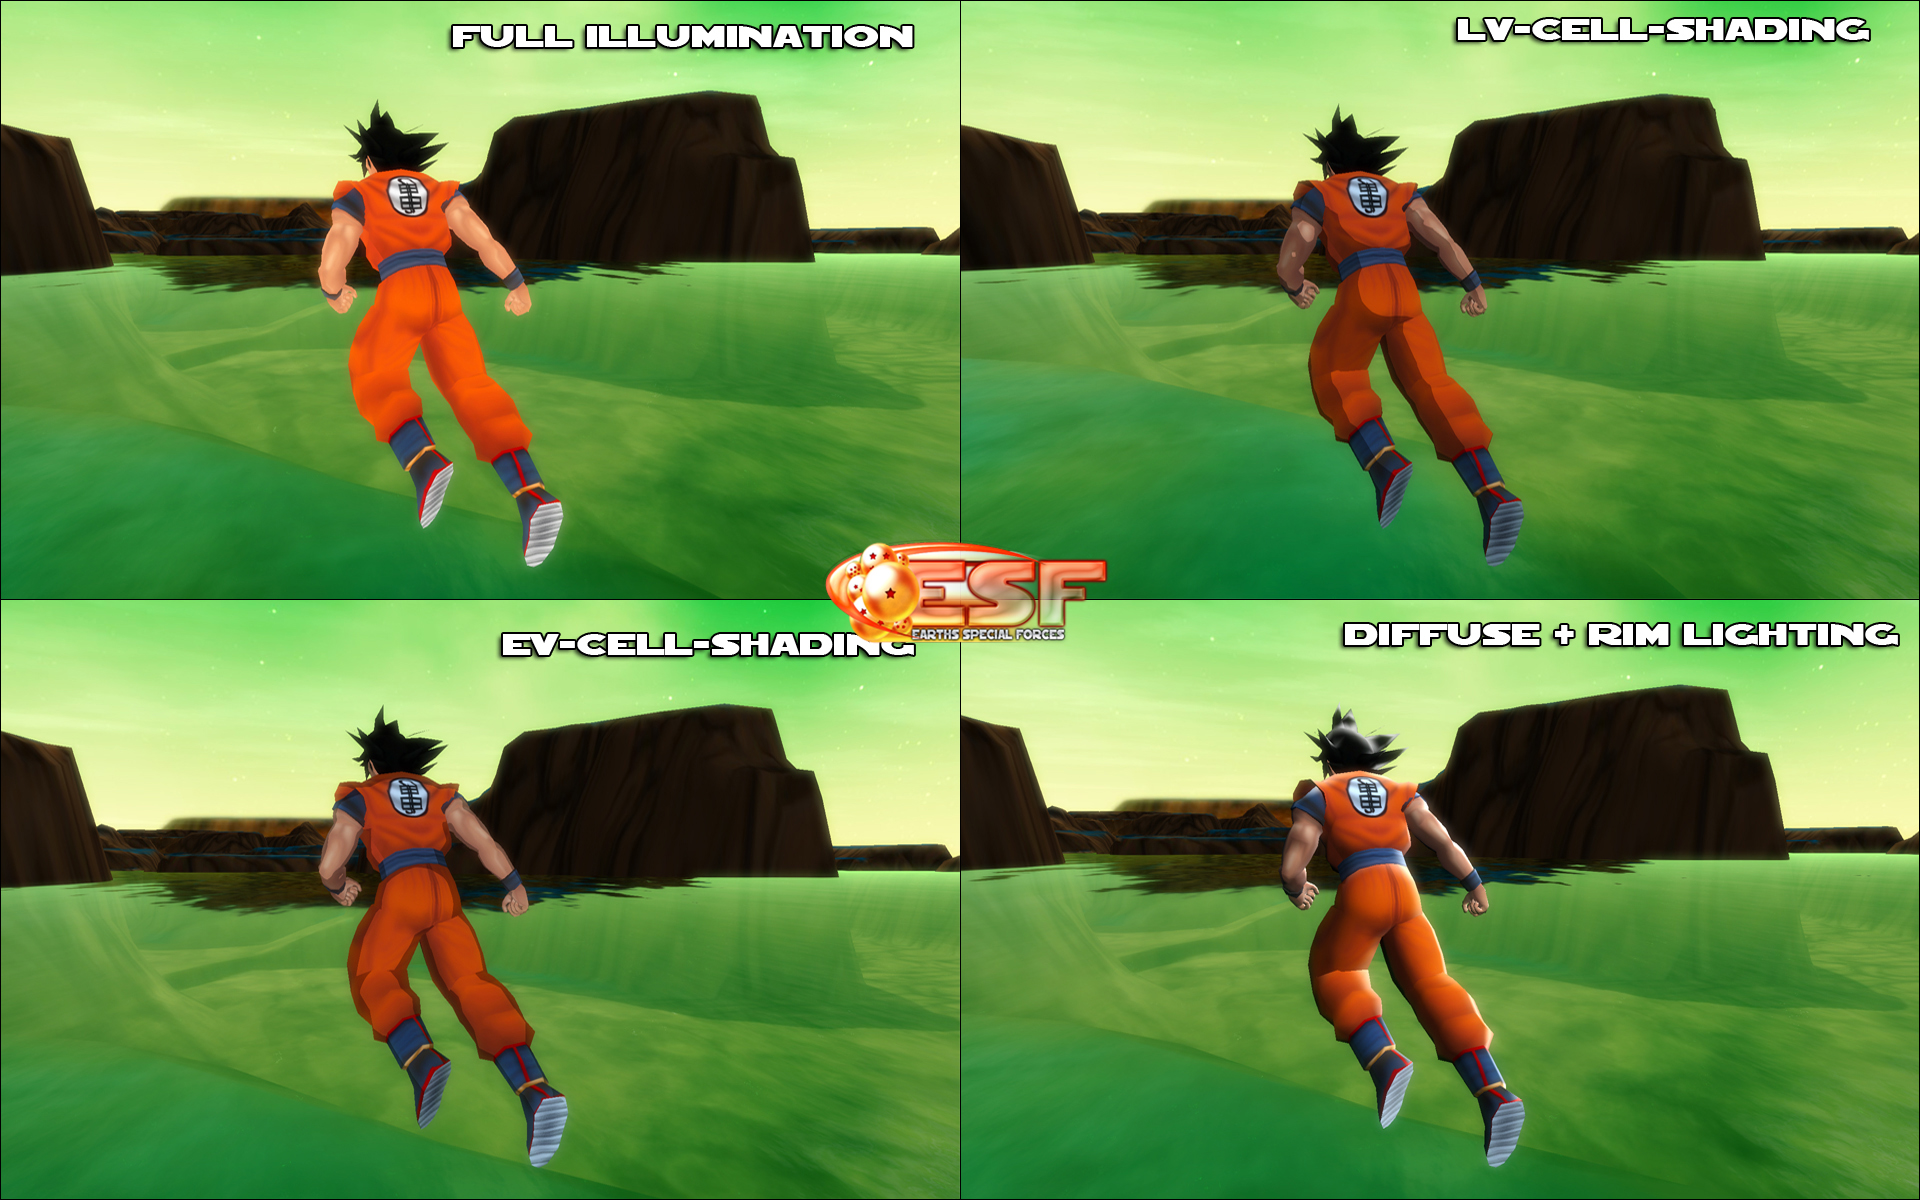 Dragon ball z esf download game.